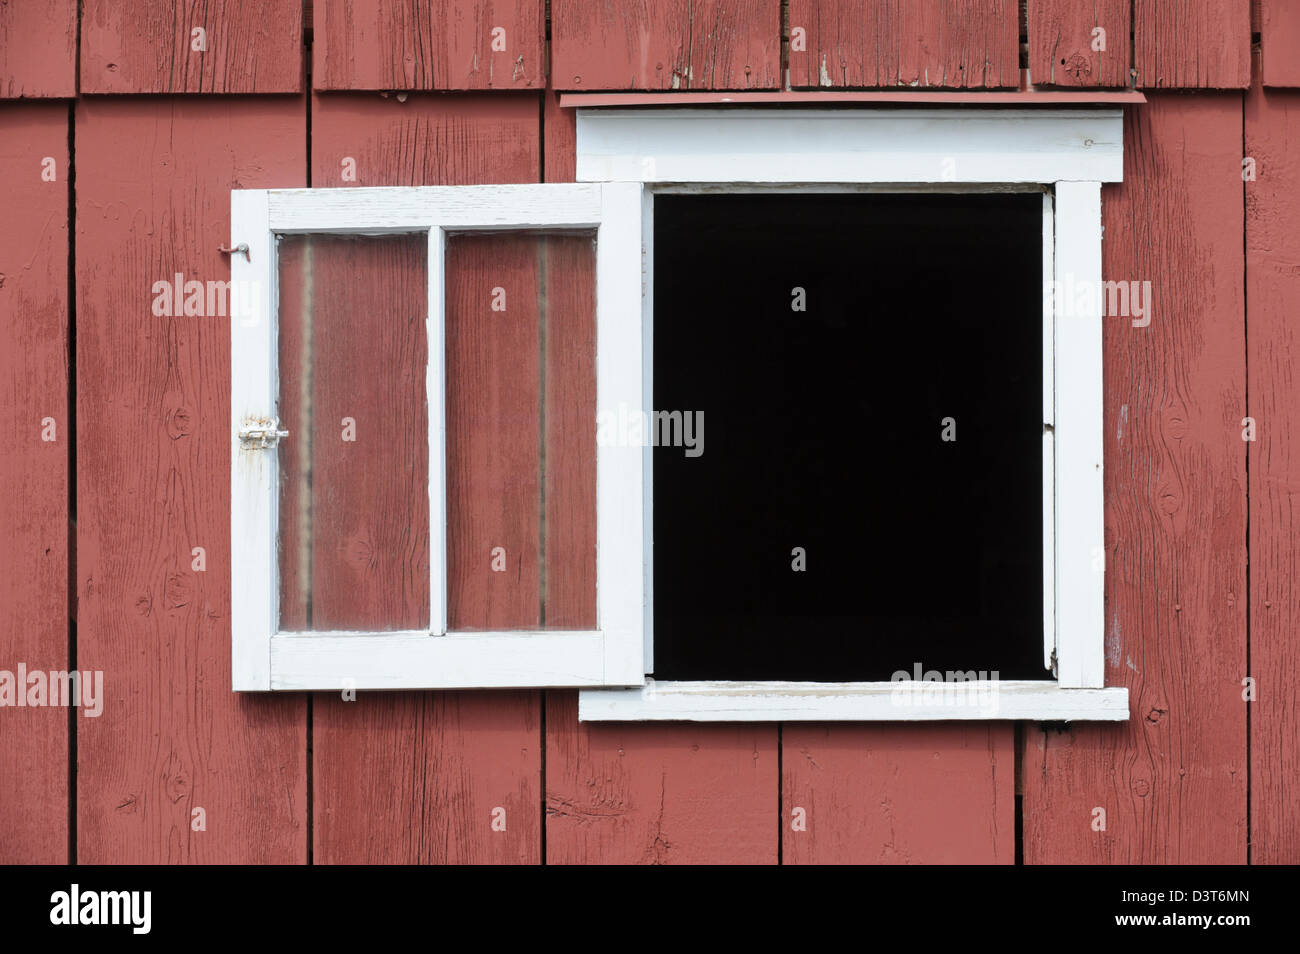 Open red barn doors - Open Window In Red Barn With White Trim As A Design Element Place Your Own Image In The Opening